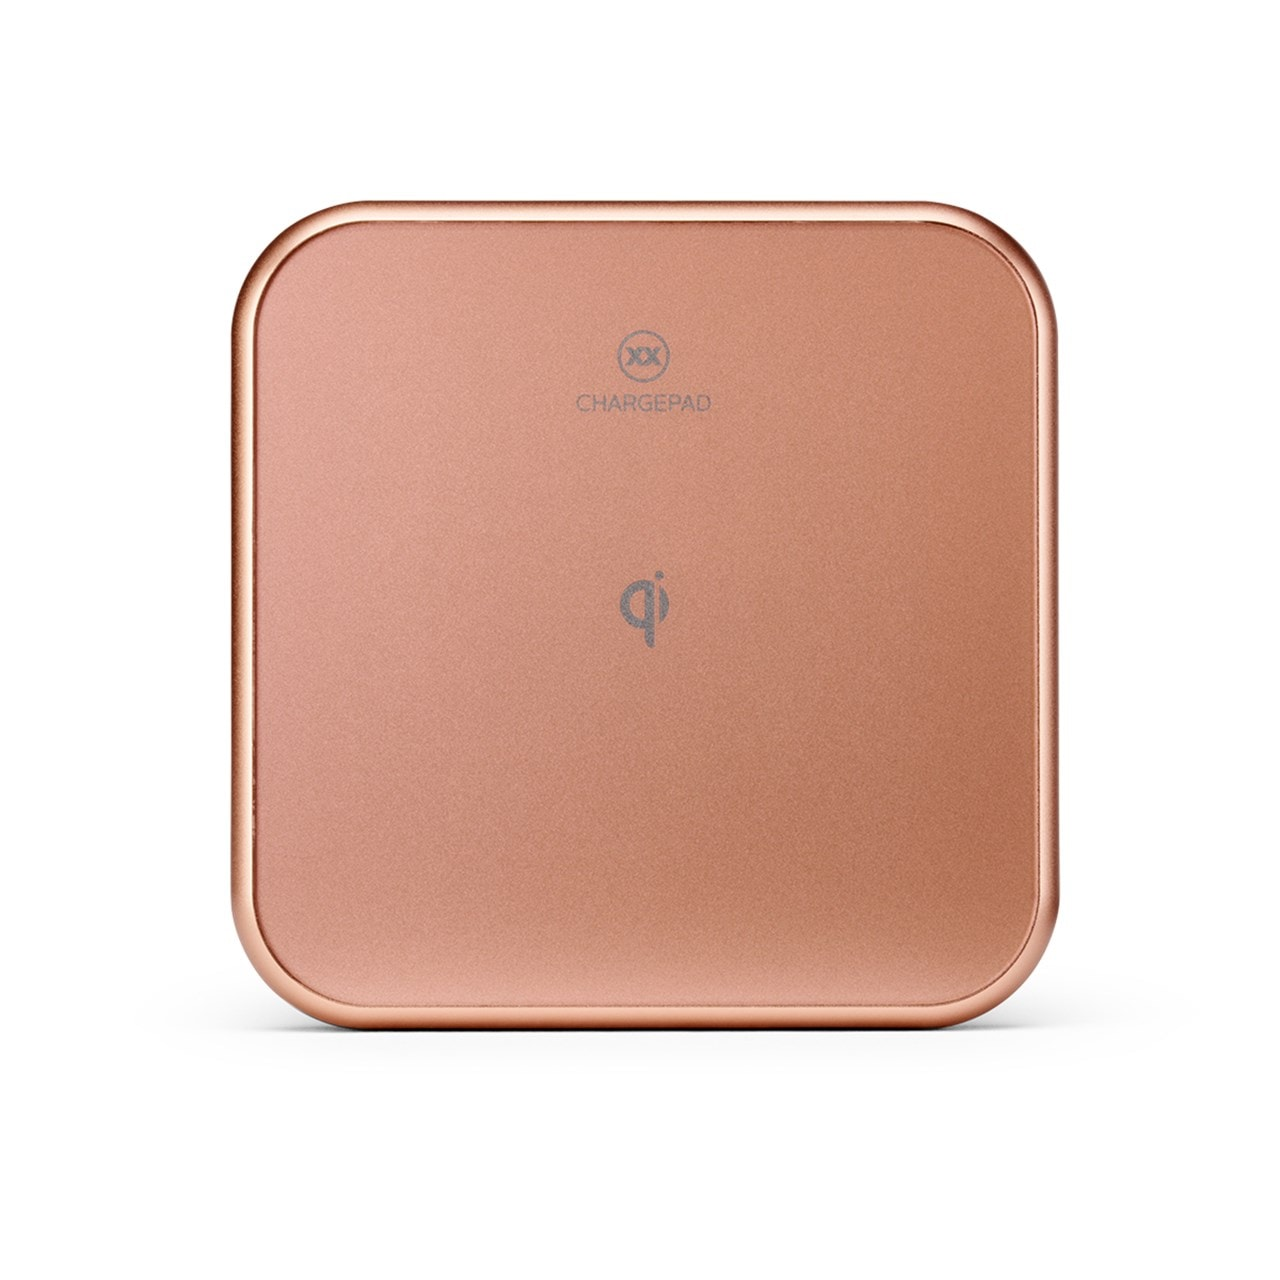 Mixx Charge Chargepad Rose Gold 10W Qi Wireless Charger - 1